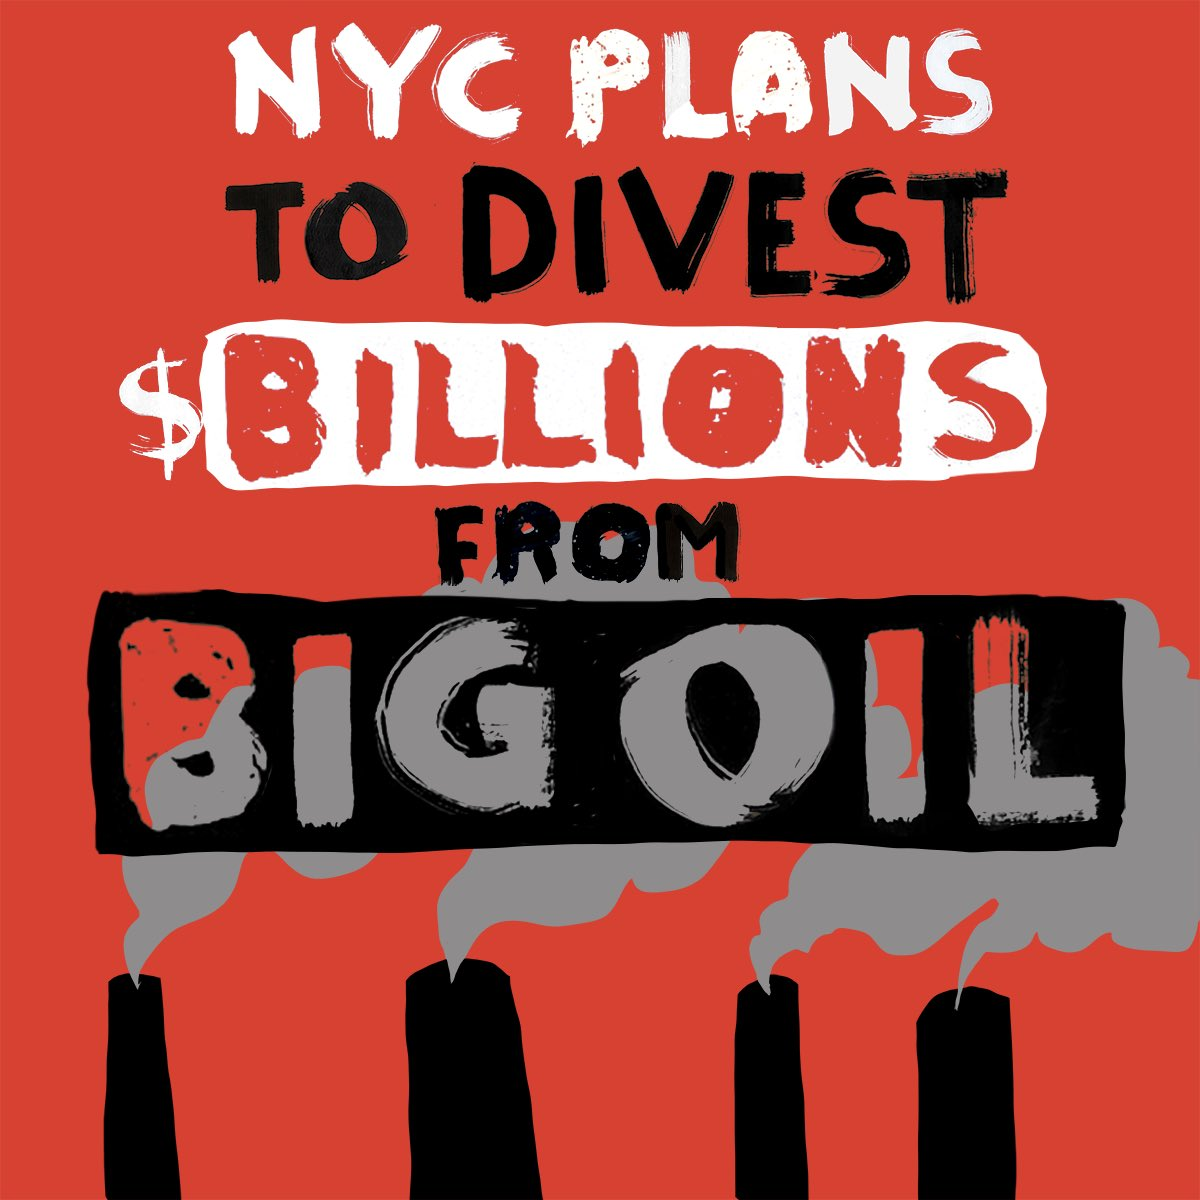 NYC is the first big city in America to sue and divest from Big Oil. #stopfundingfossils https://t.co/7aqjV3E46J